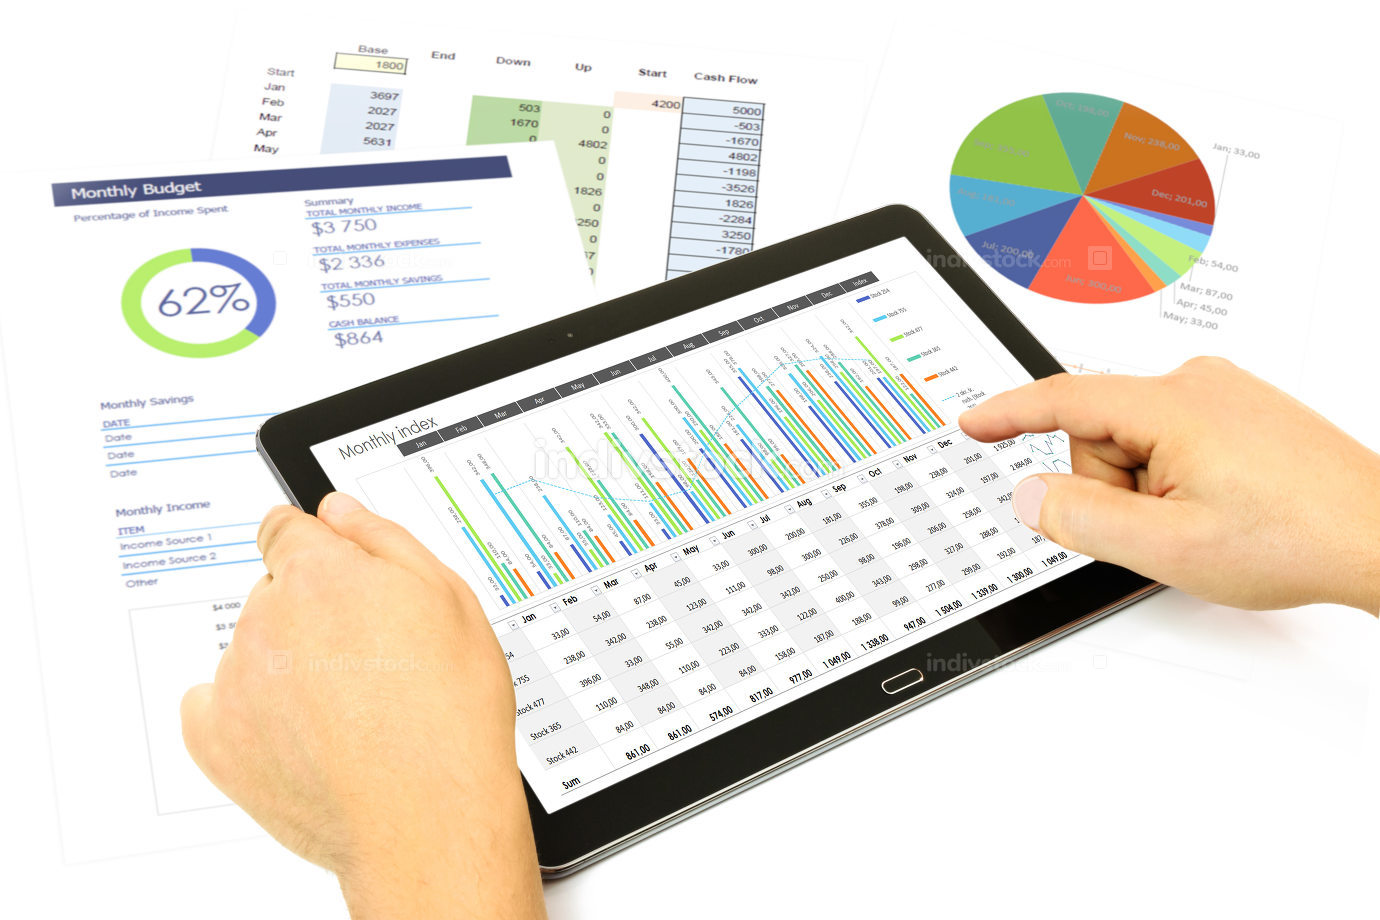 Analyzing financial data on the tablet